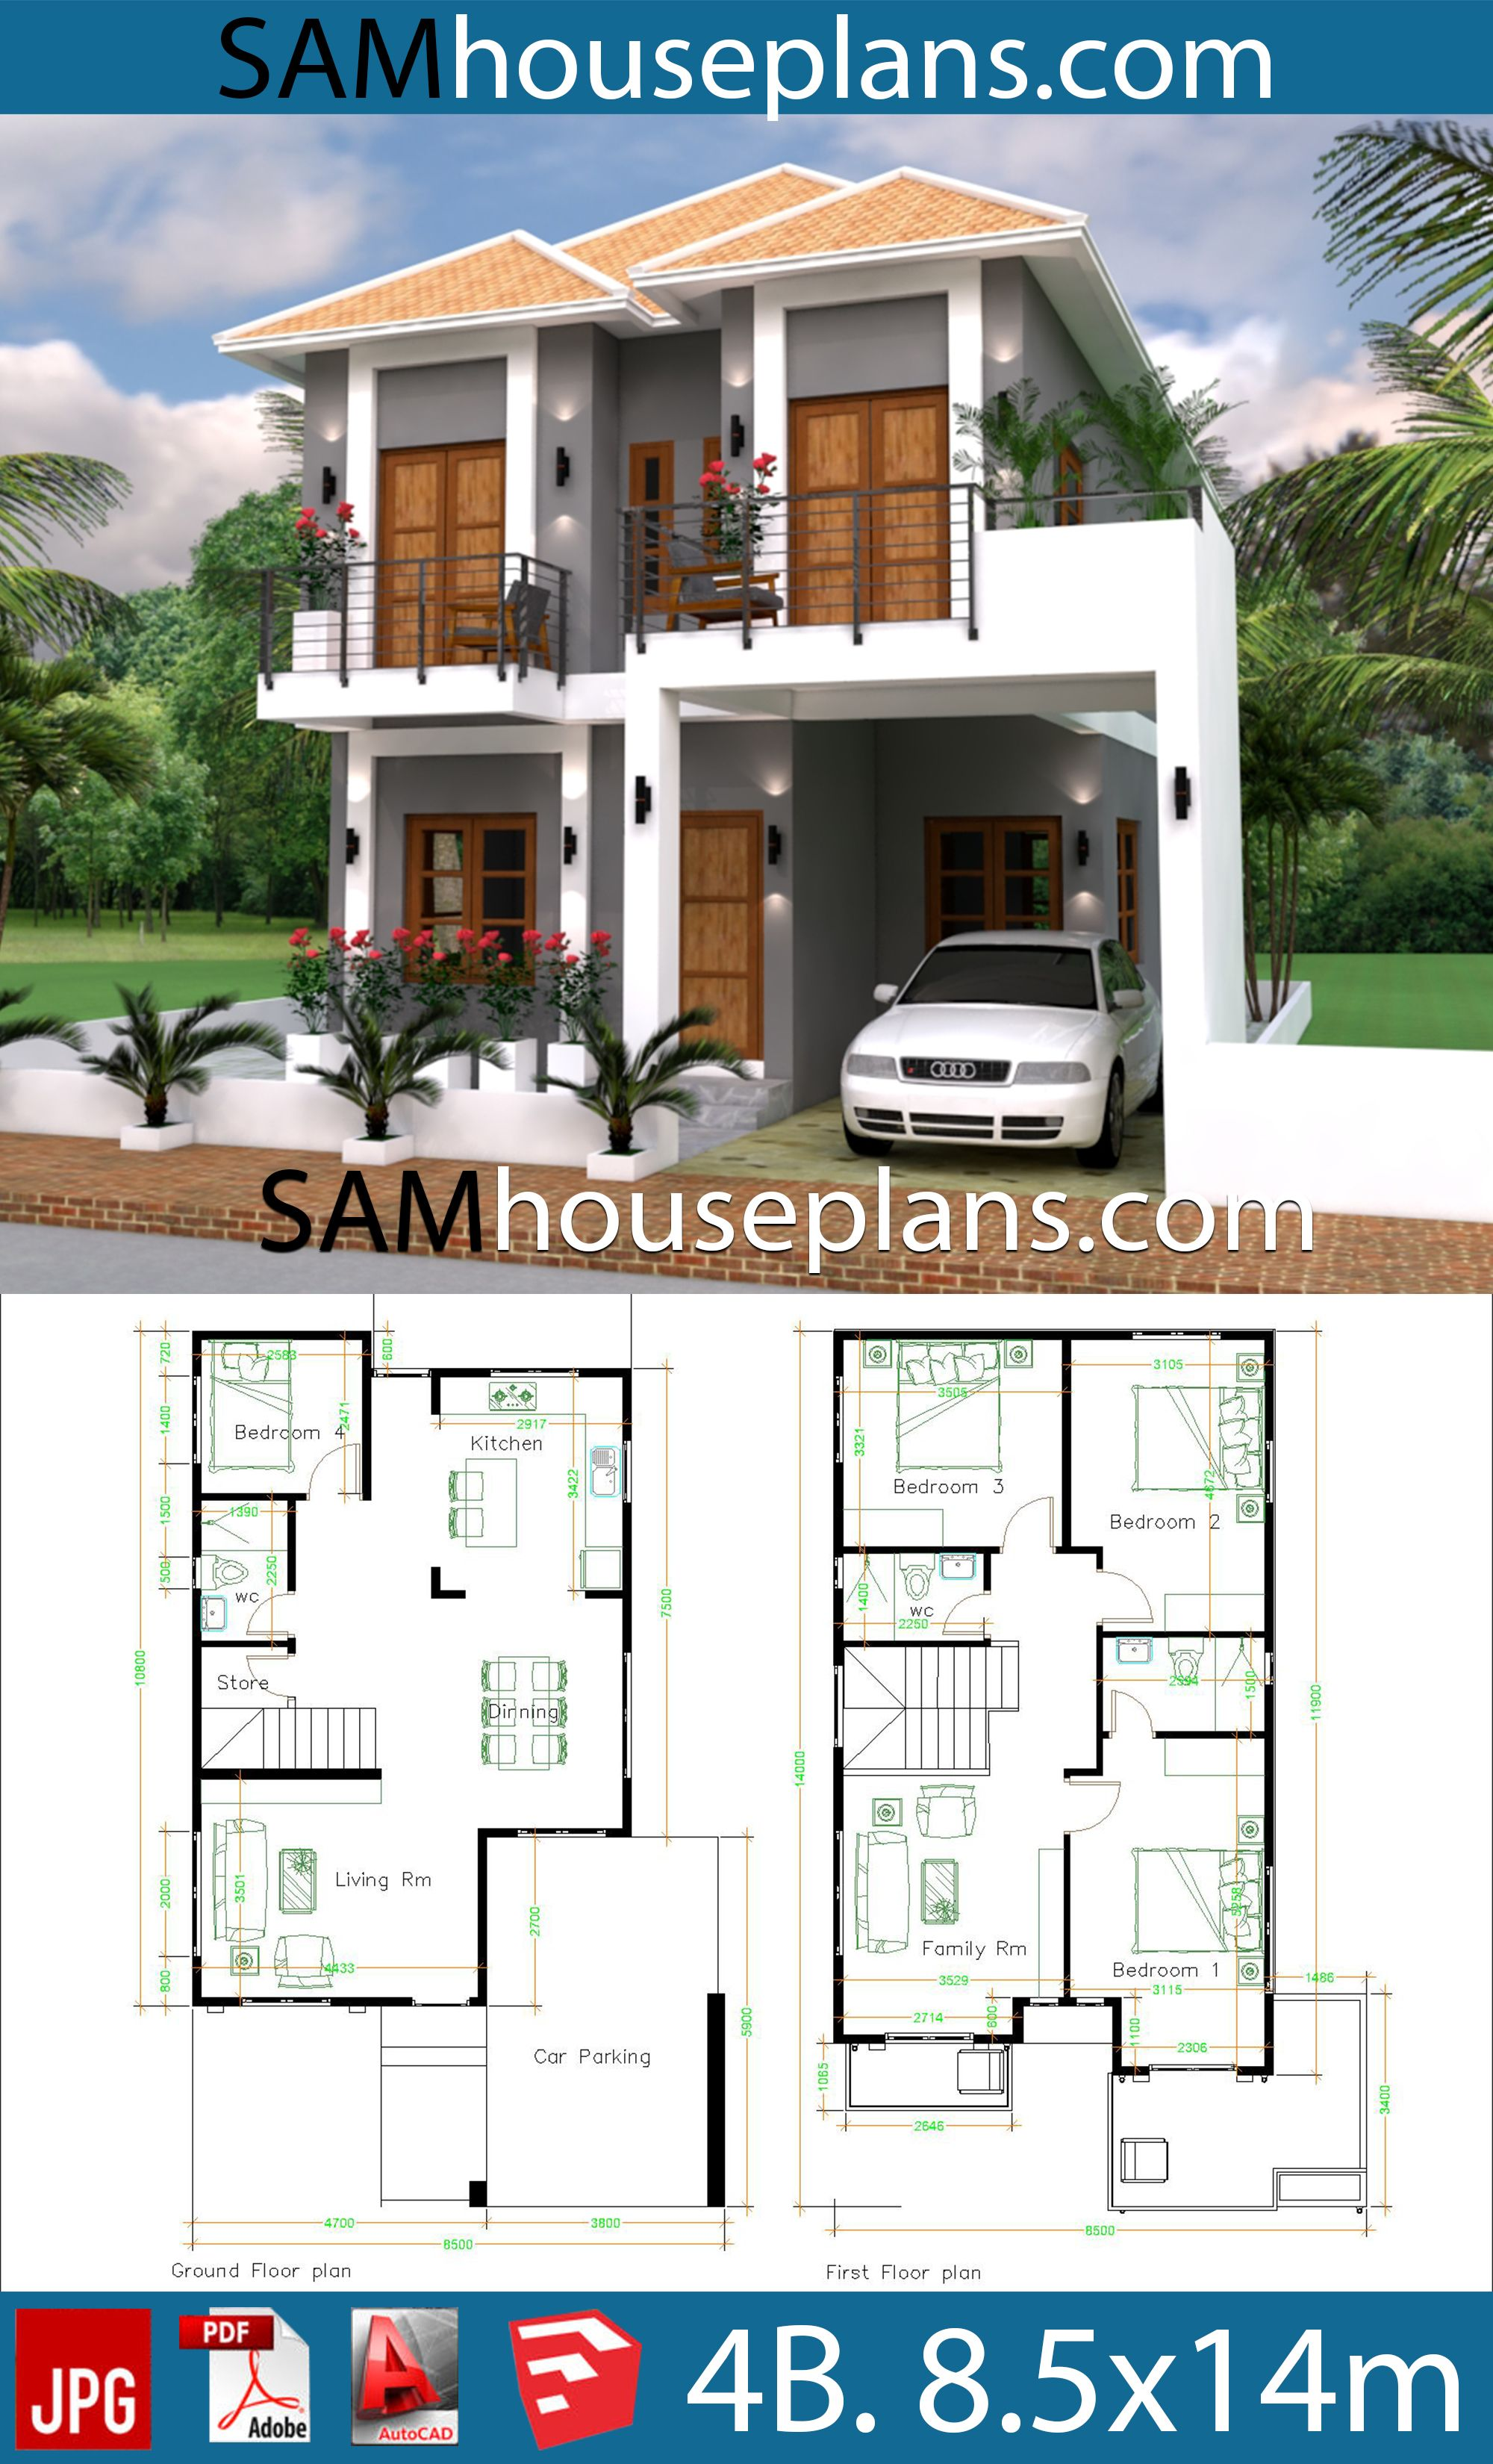 House Plans 8 5x14 With 4 Bedrooms House Plans Free Downloads Two Storey House Plans House Layout Plans House Plans